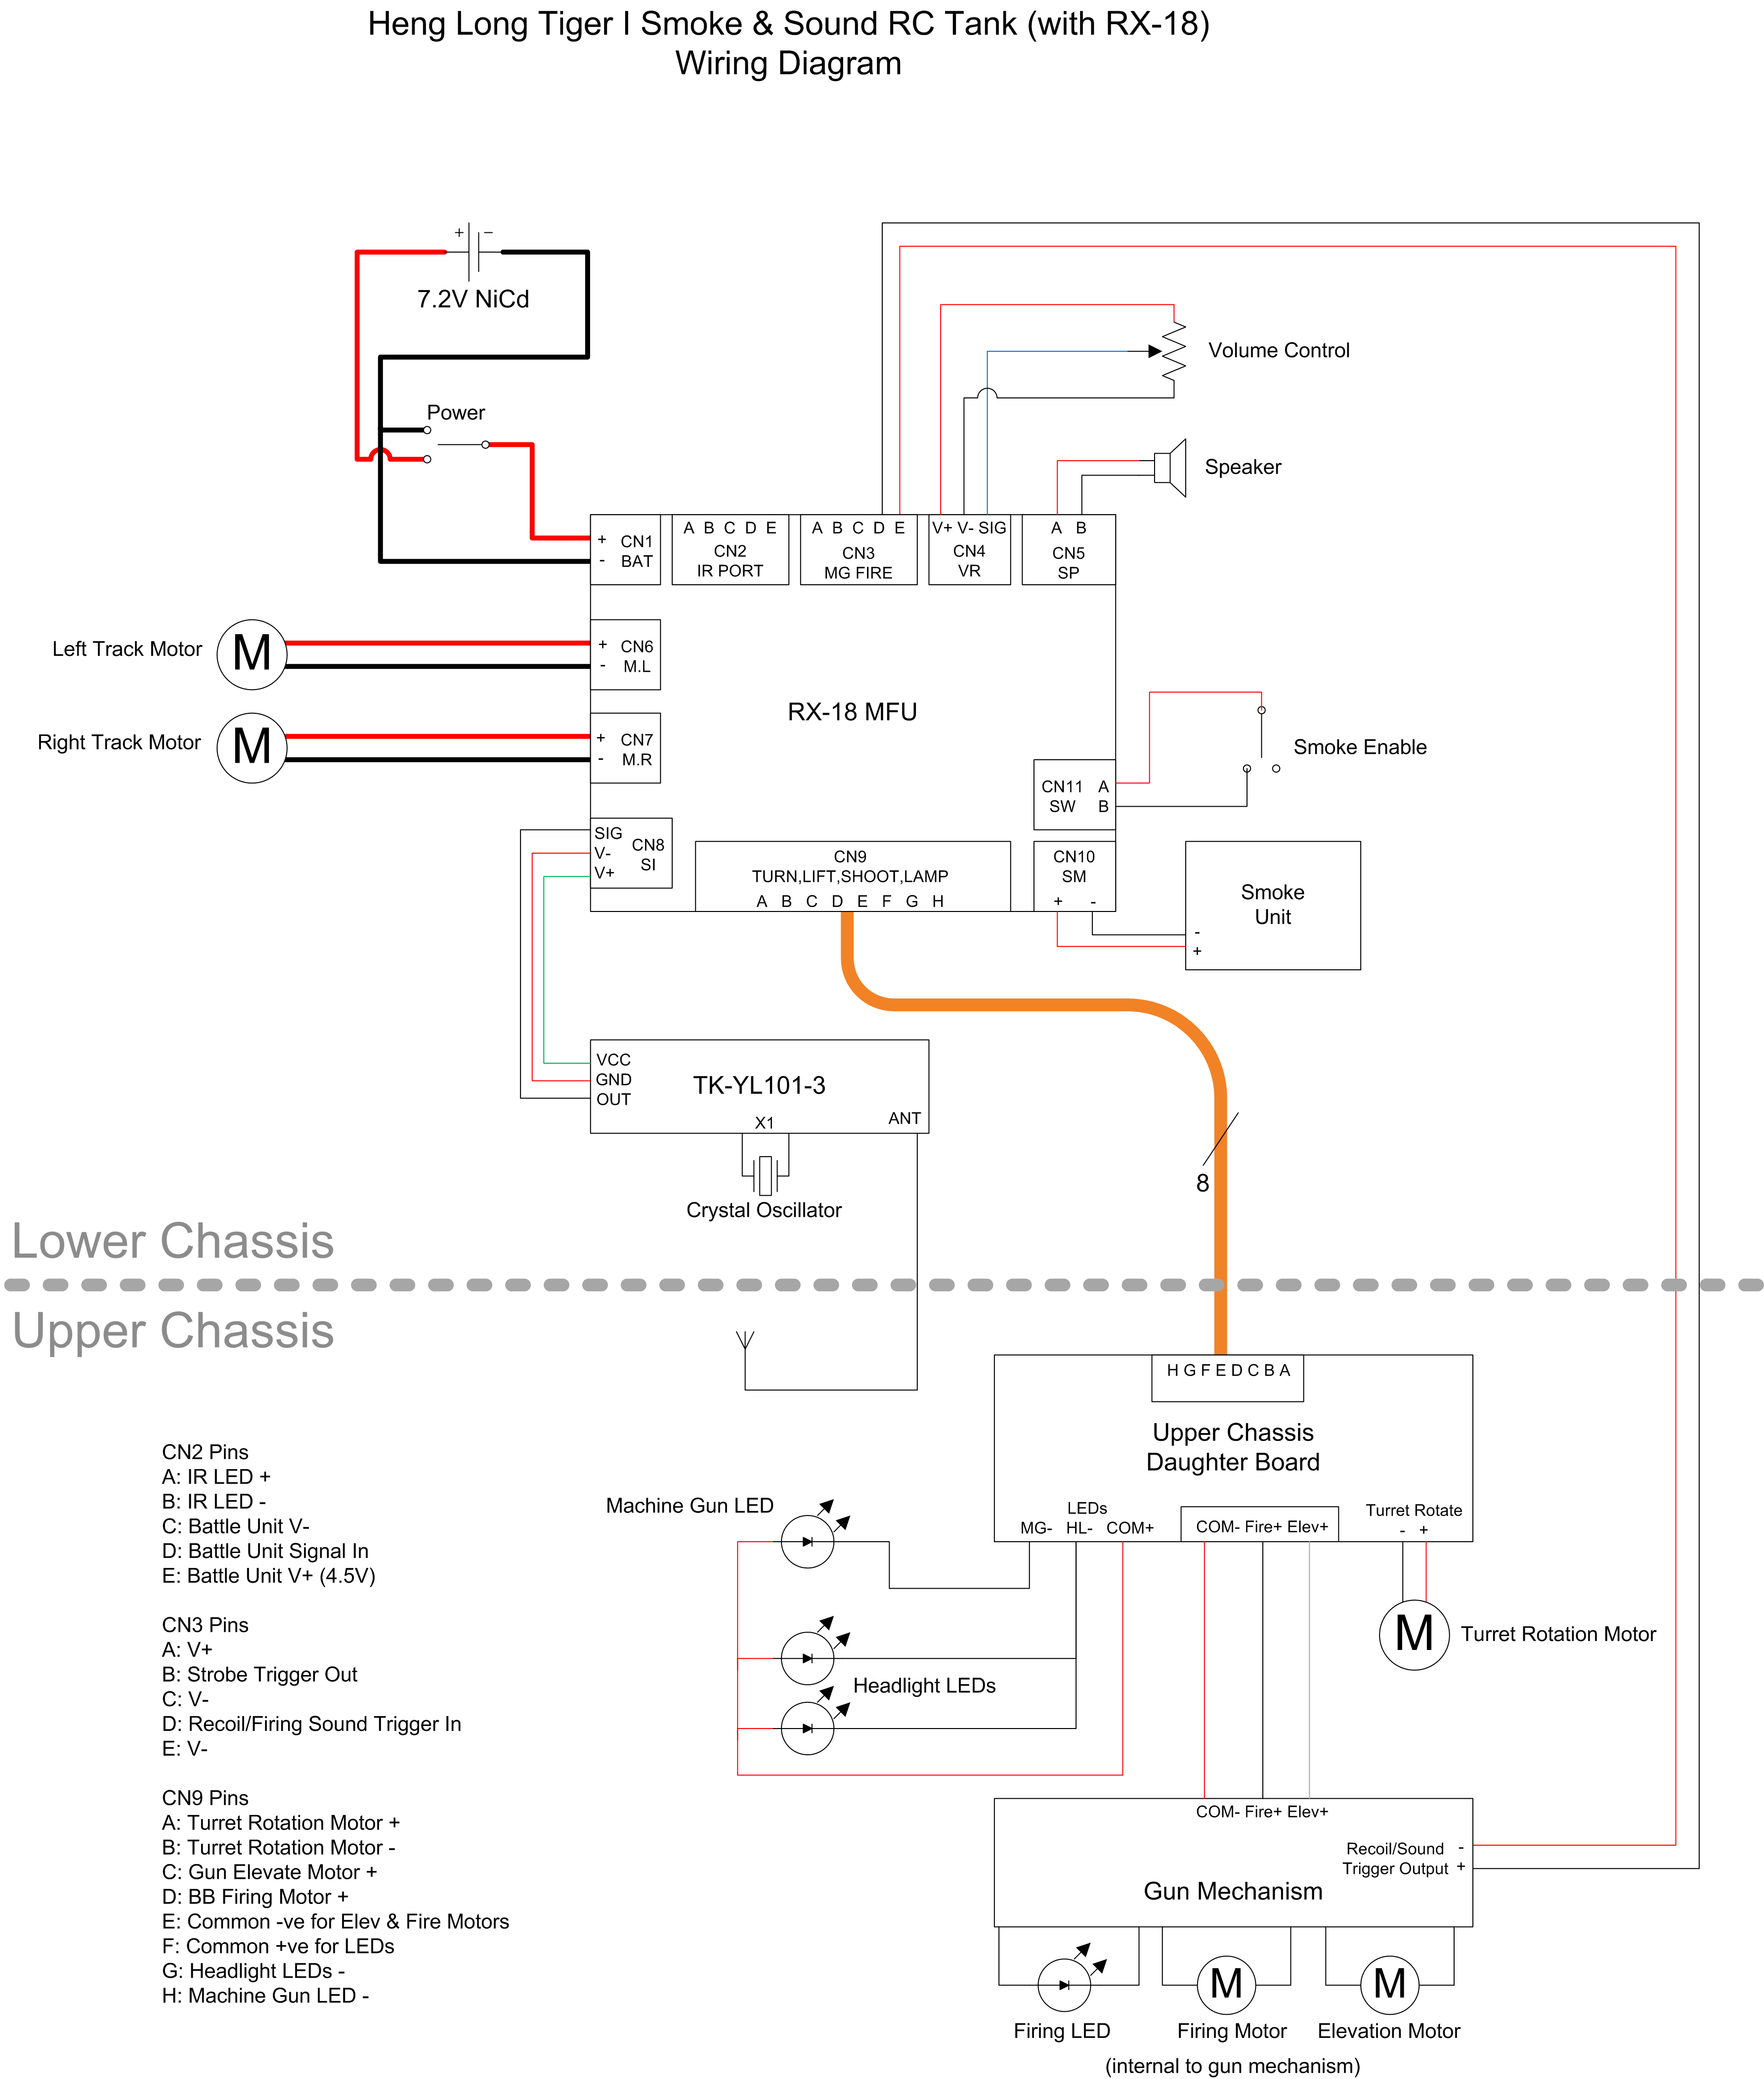 Hl Tiger 1 Wiring Problemneed Help Page 2 Rcu Forums Ir Receiver Circuit Diagram